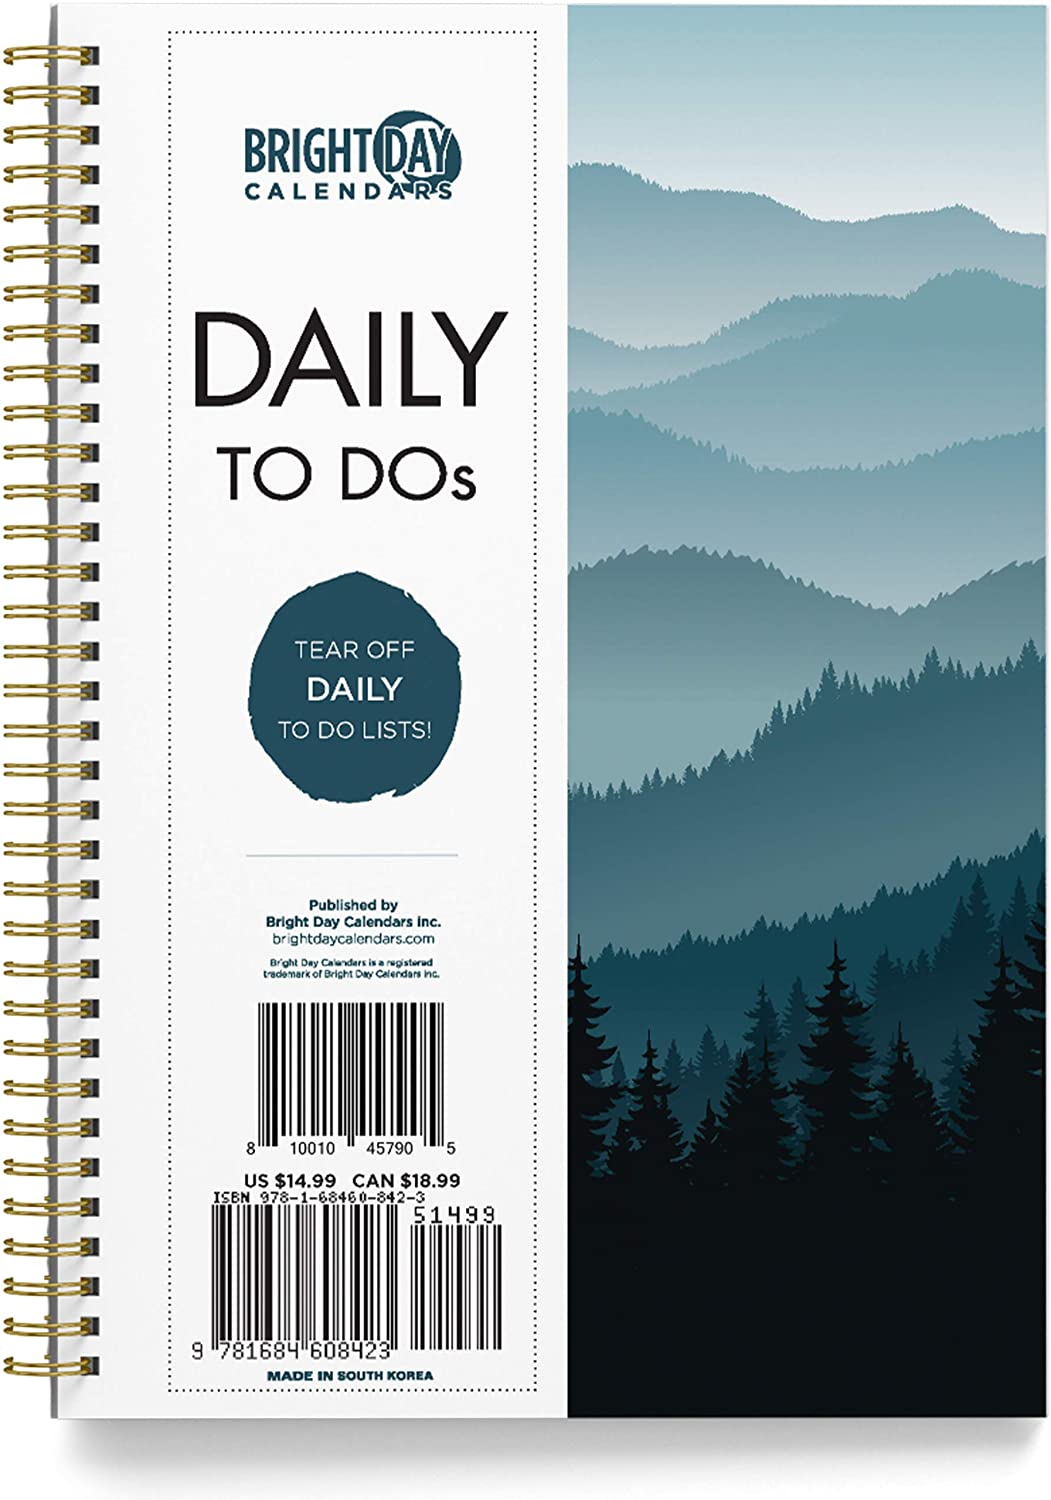 To Do List Daily Task Checklist Planner Time Management Notebook by Bright Day Non Dated Flex Cover Spiral Organizer 8.25 x 6.25 (Treeline)…